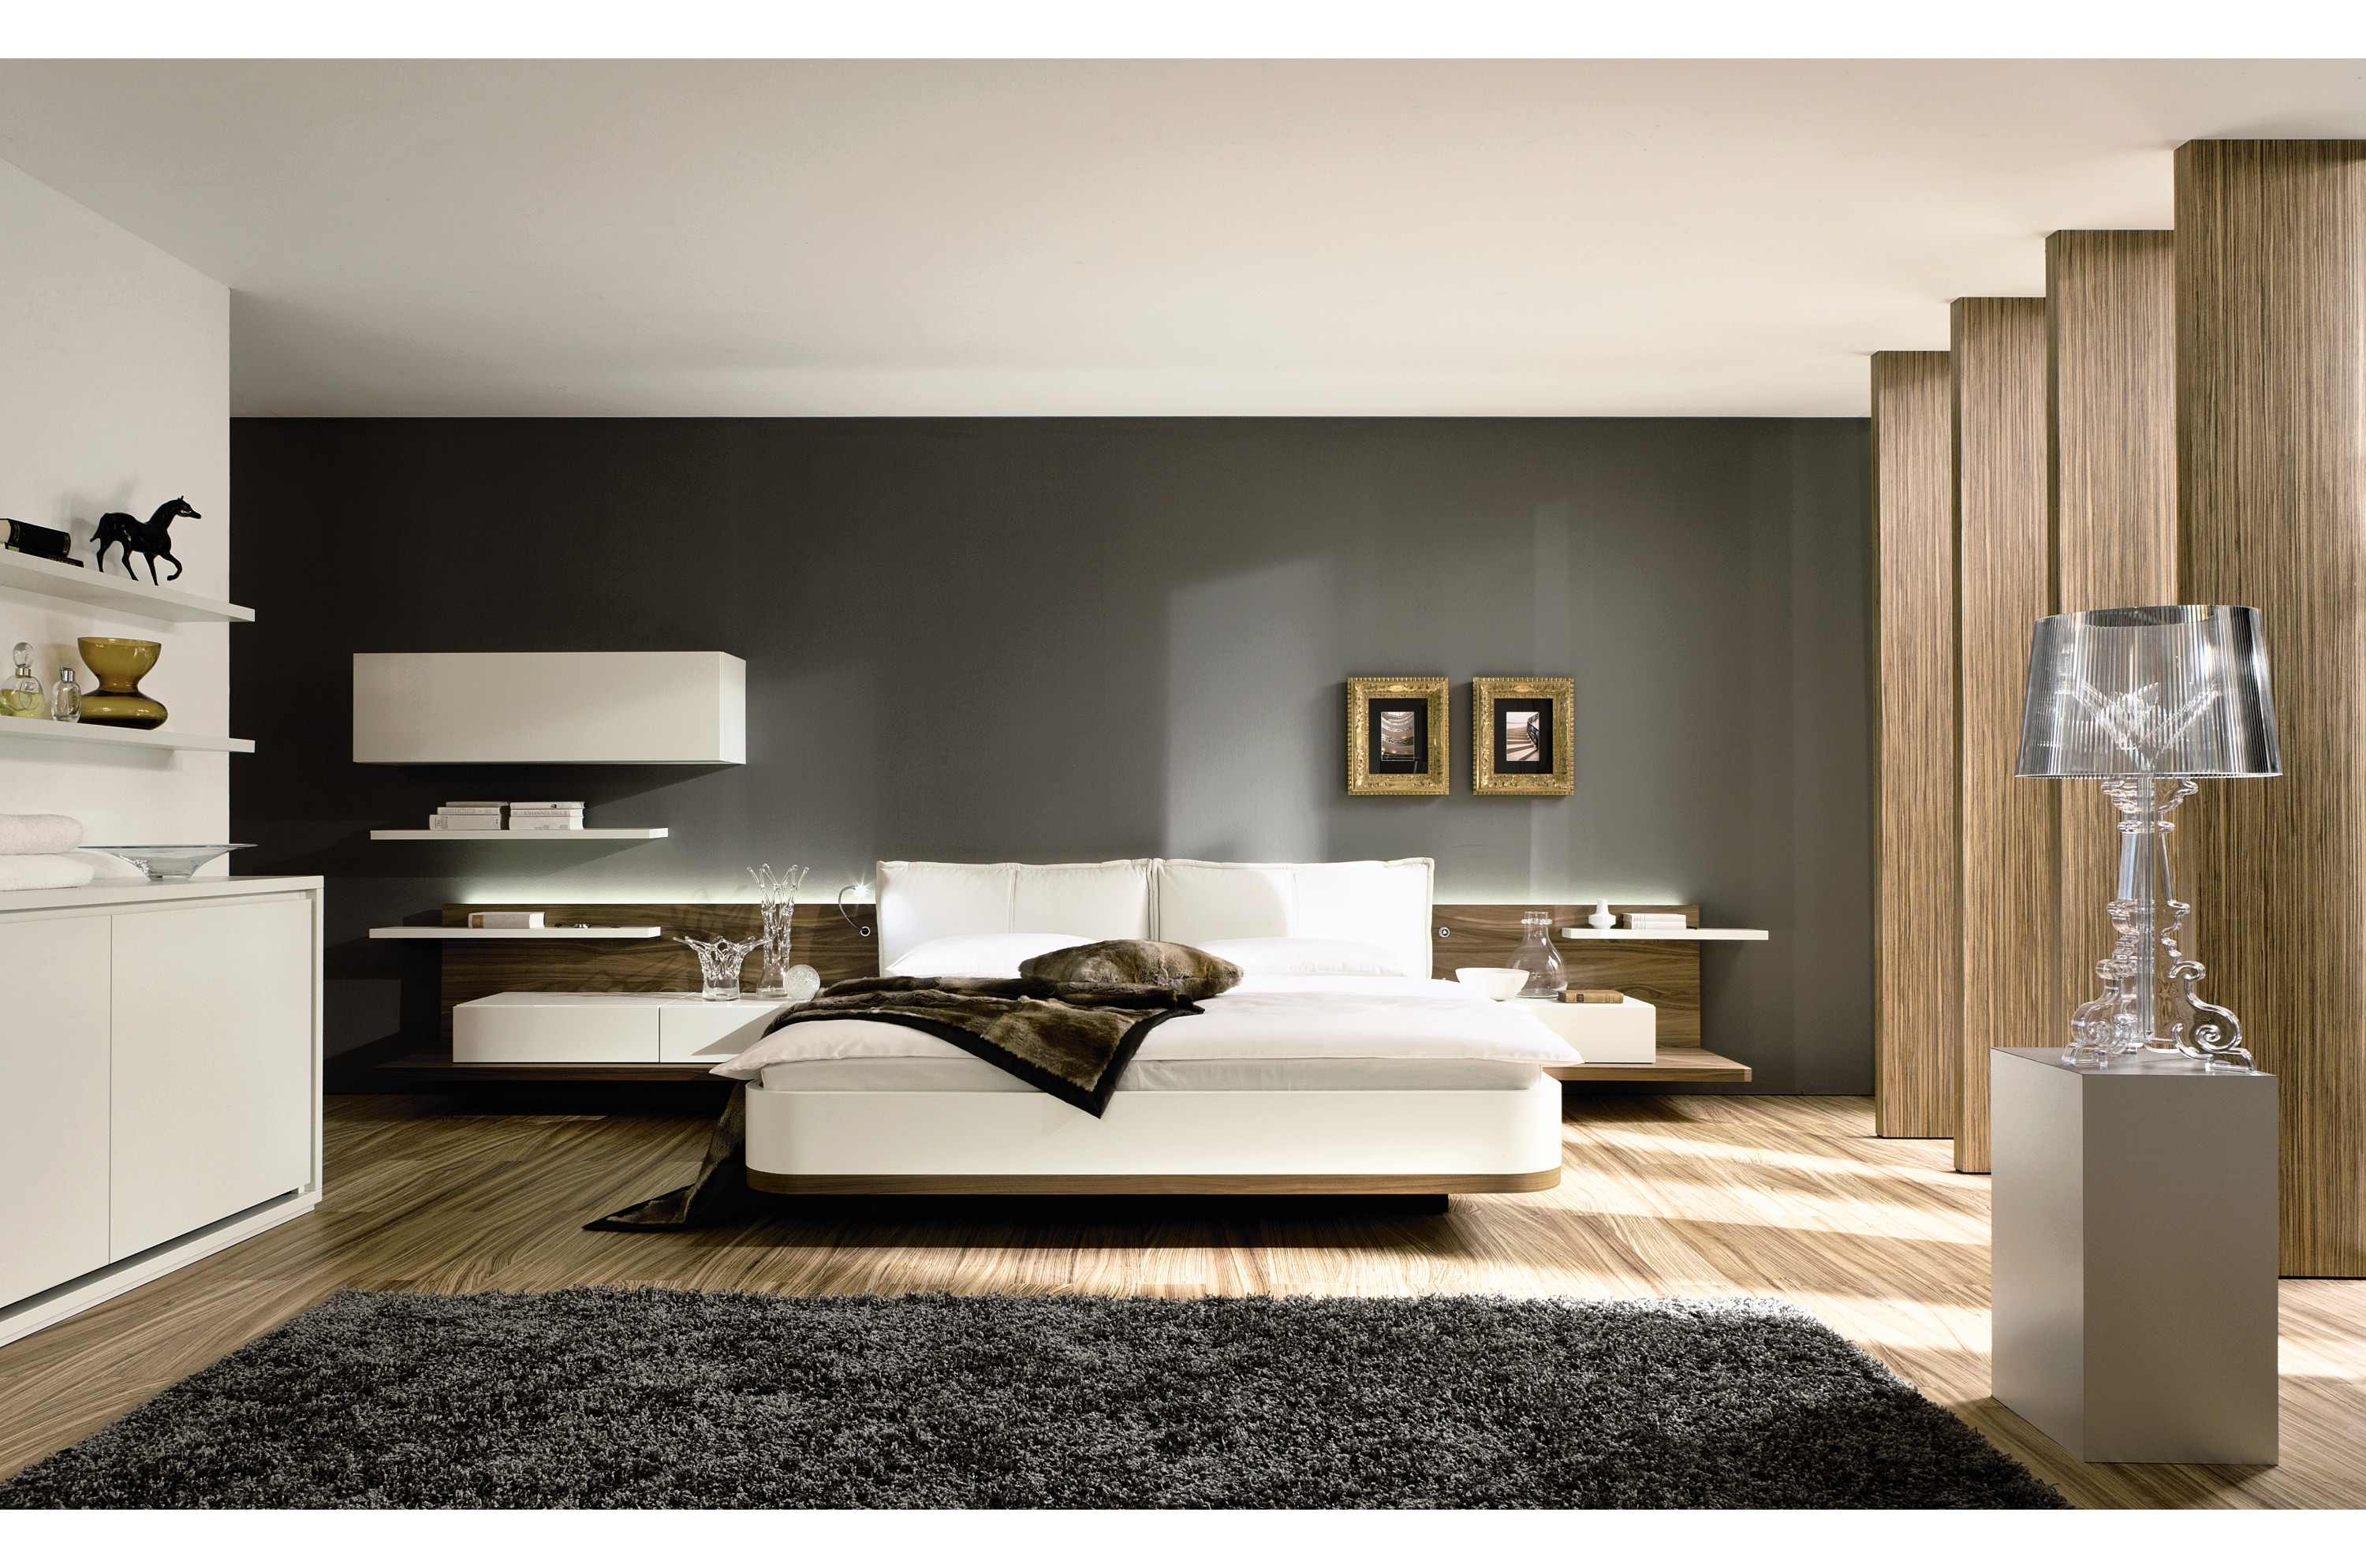 Modern bedroom innovation bedroom ideas interior design for Master bedroom interior designs